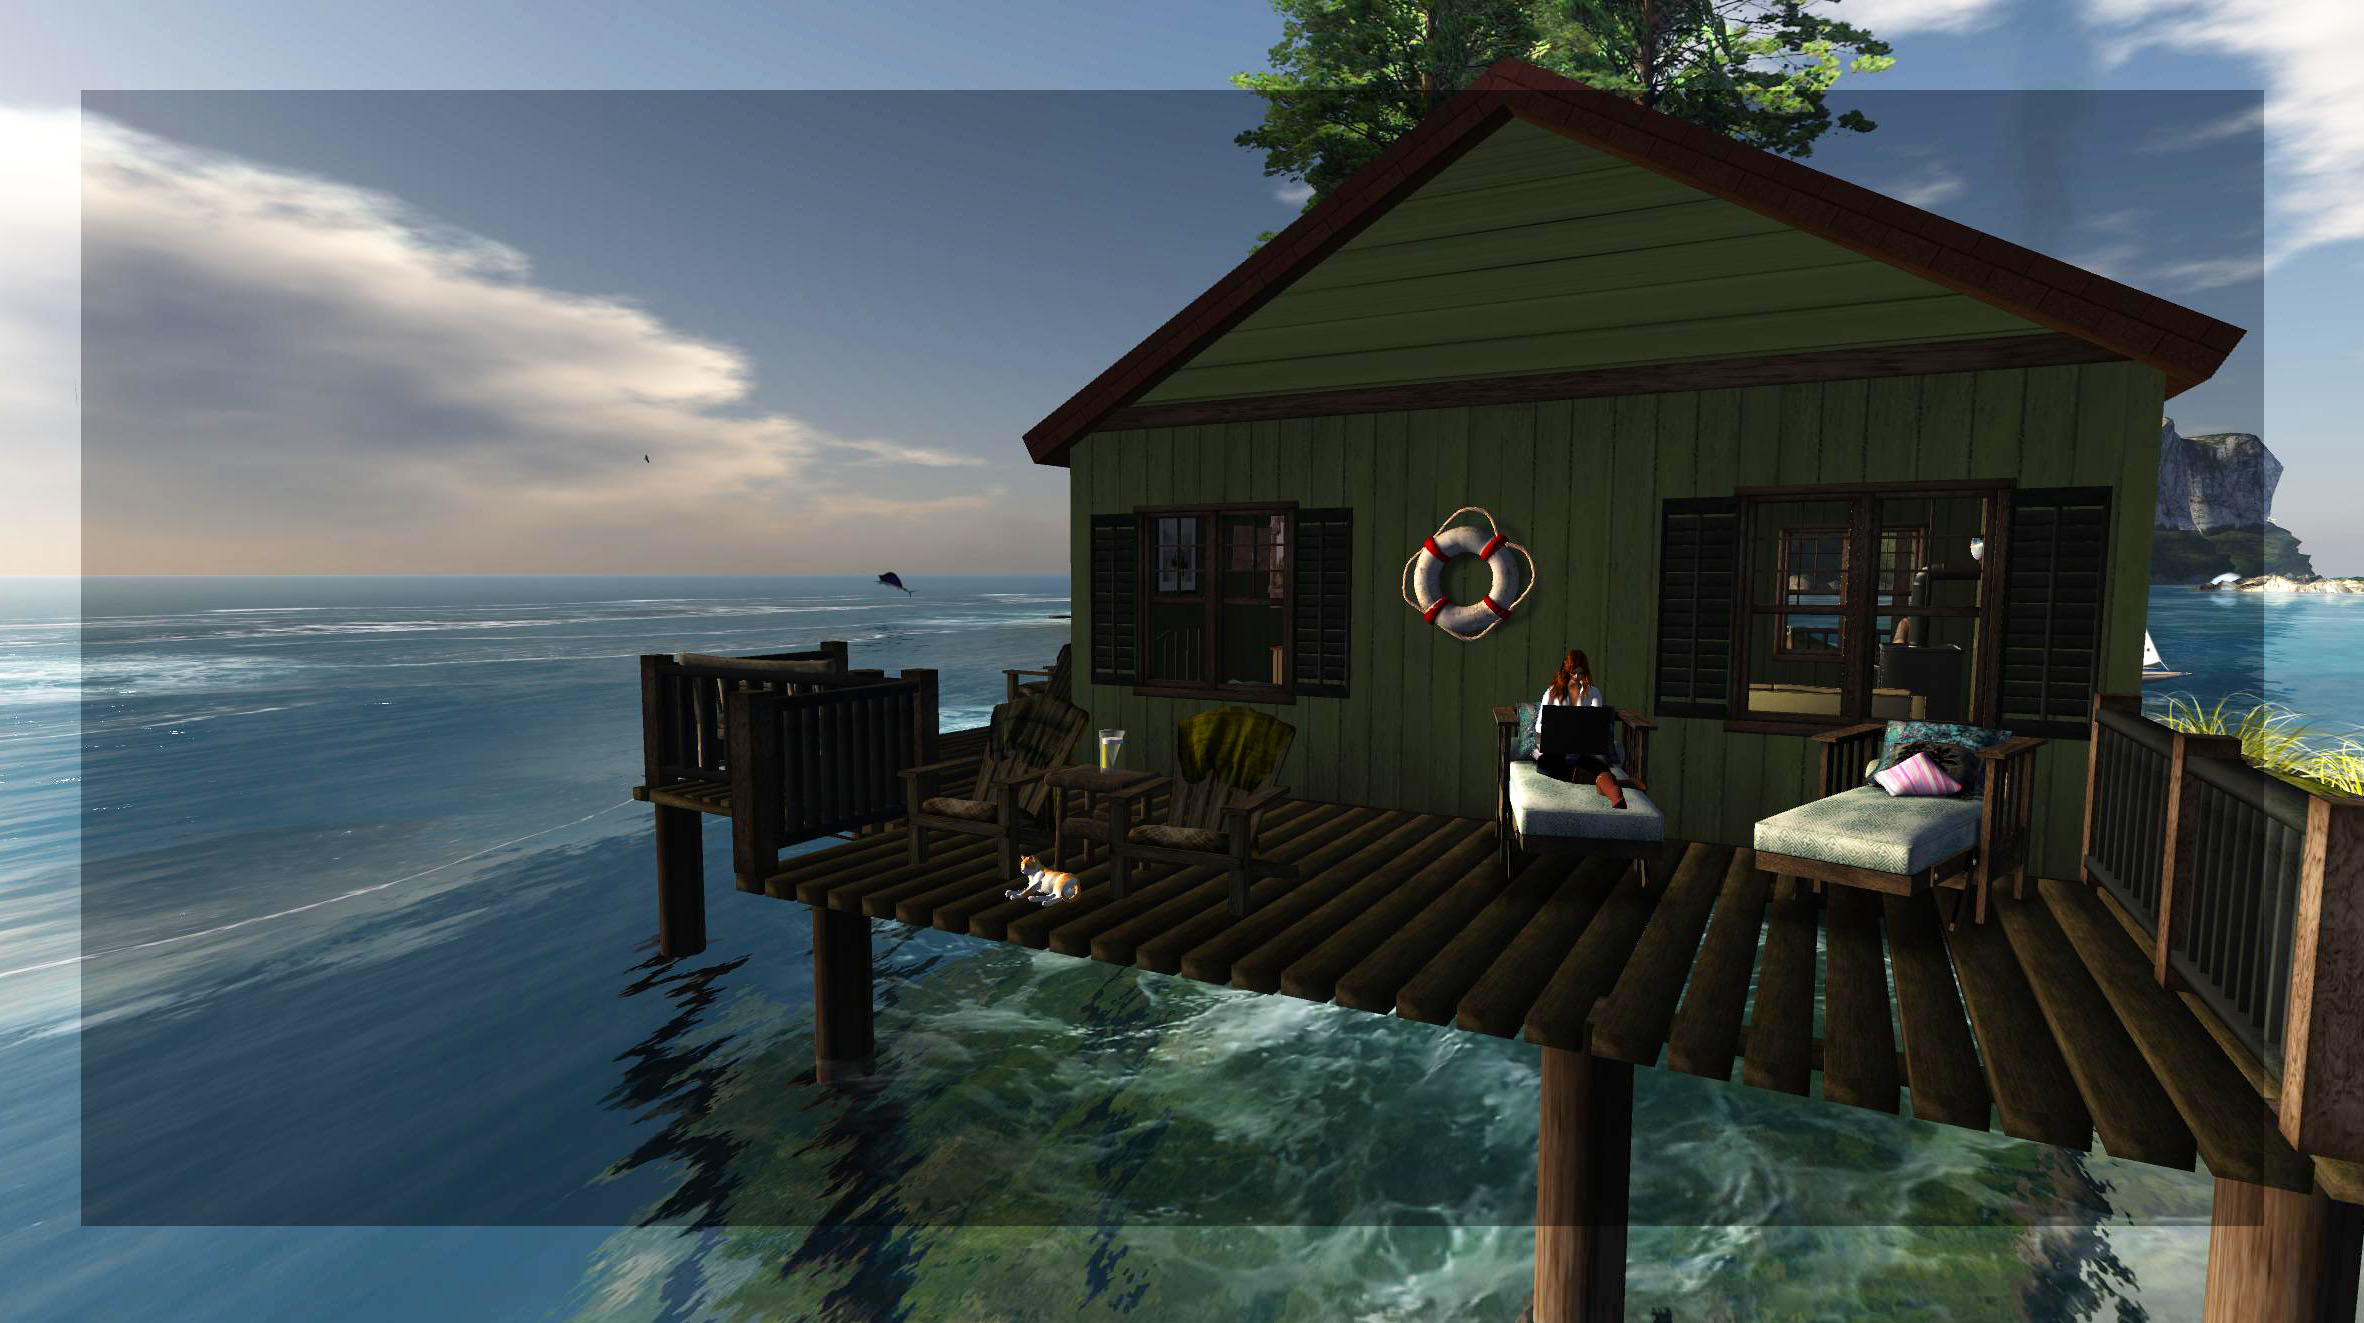 Cg bulletin how do i tell you about the cabin on the sea for Cabin by the sea